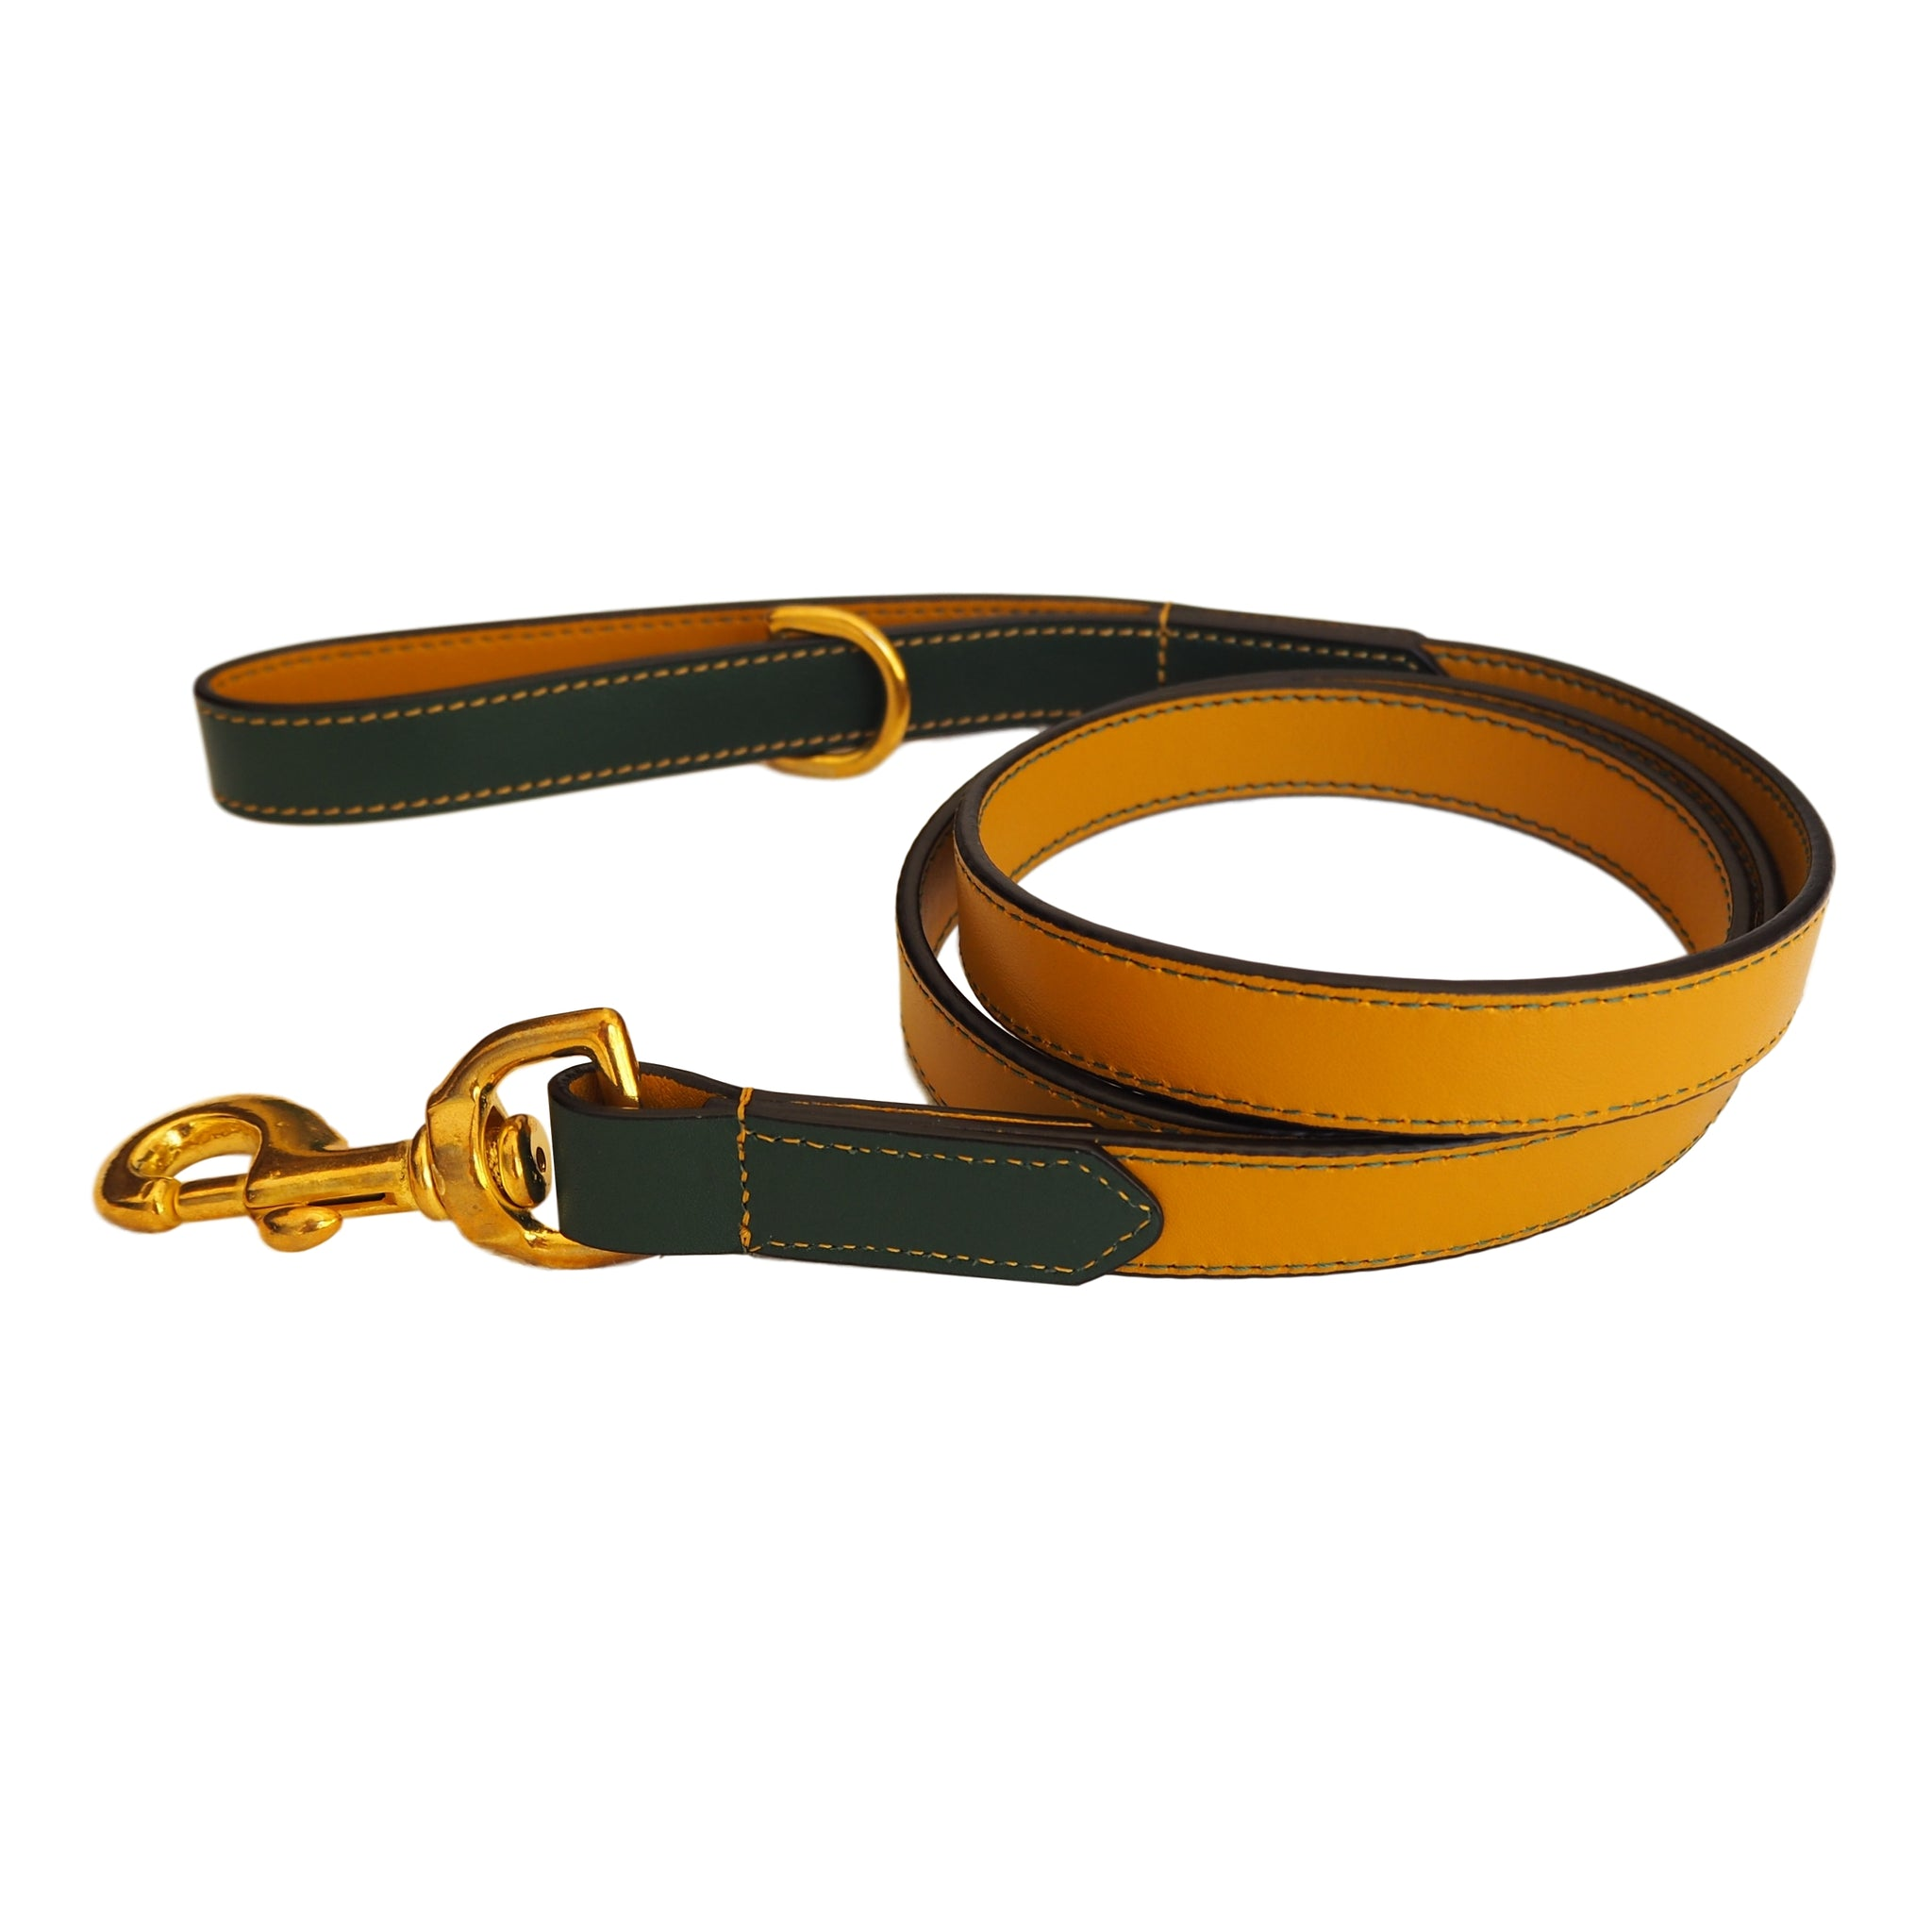 Ochre Yellow Leather Dog Lead by Opari